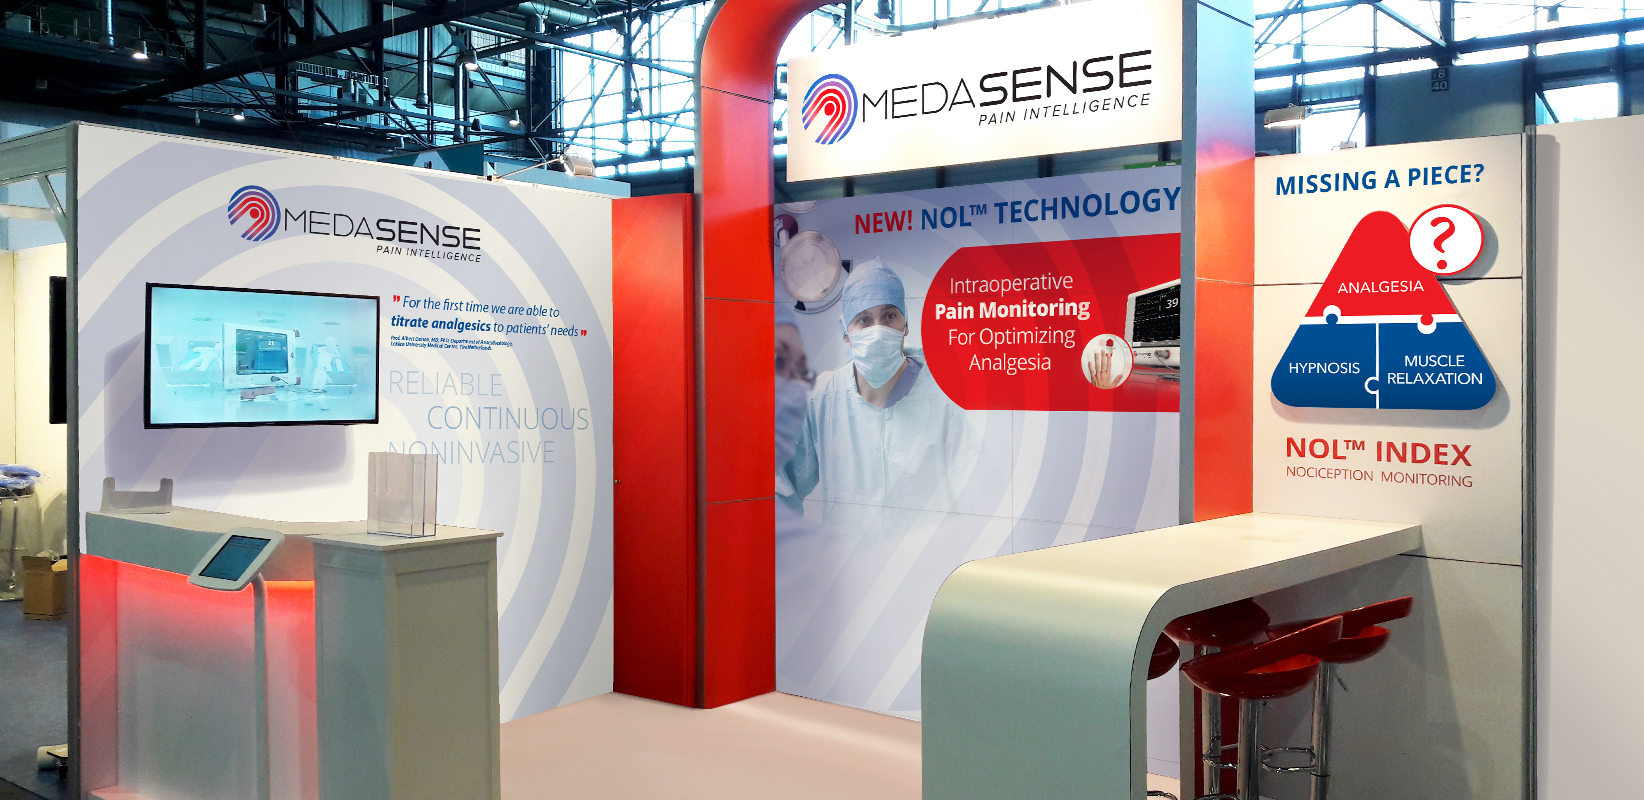 DI Branding & Design - customers - MEDASENSE